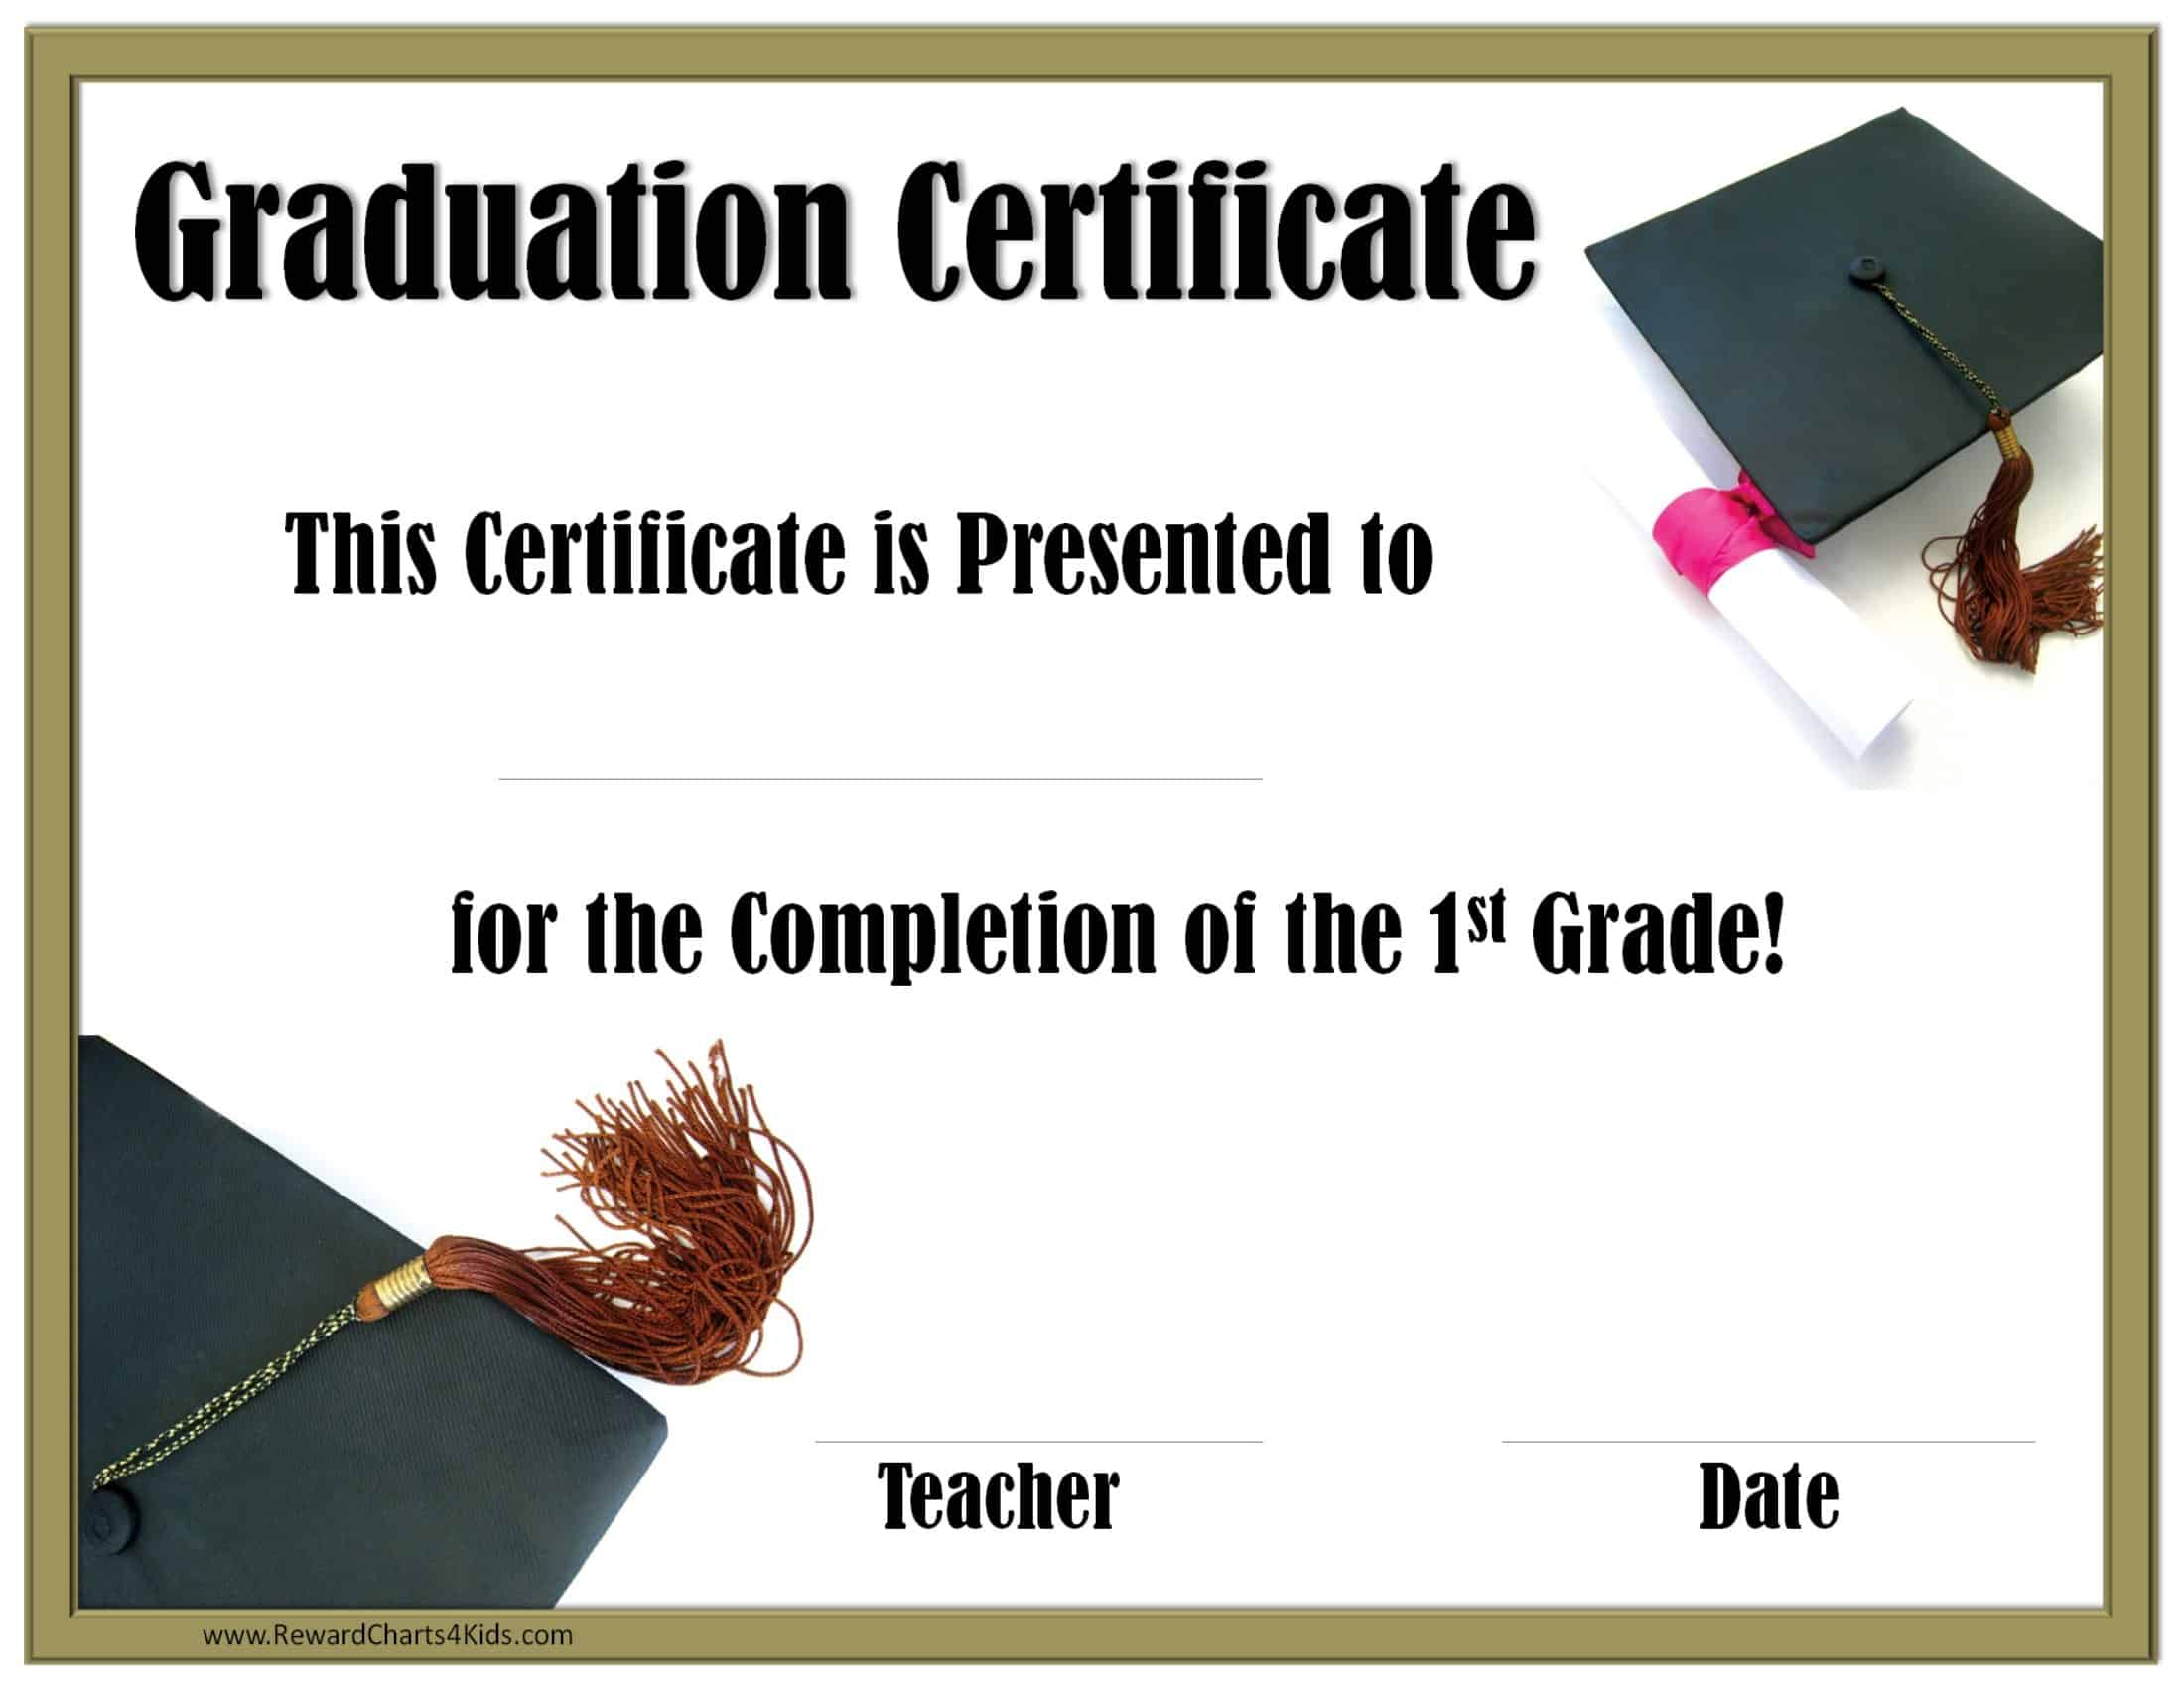 School graduation certificates customize online with or without 1st grade xflitez Images